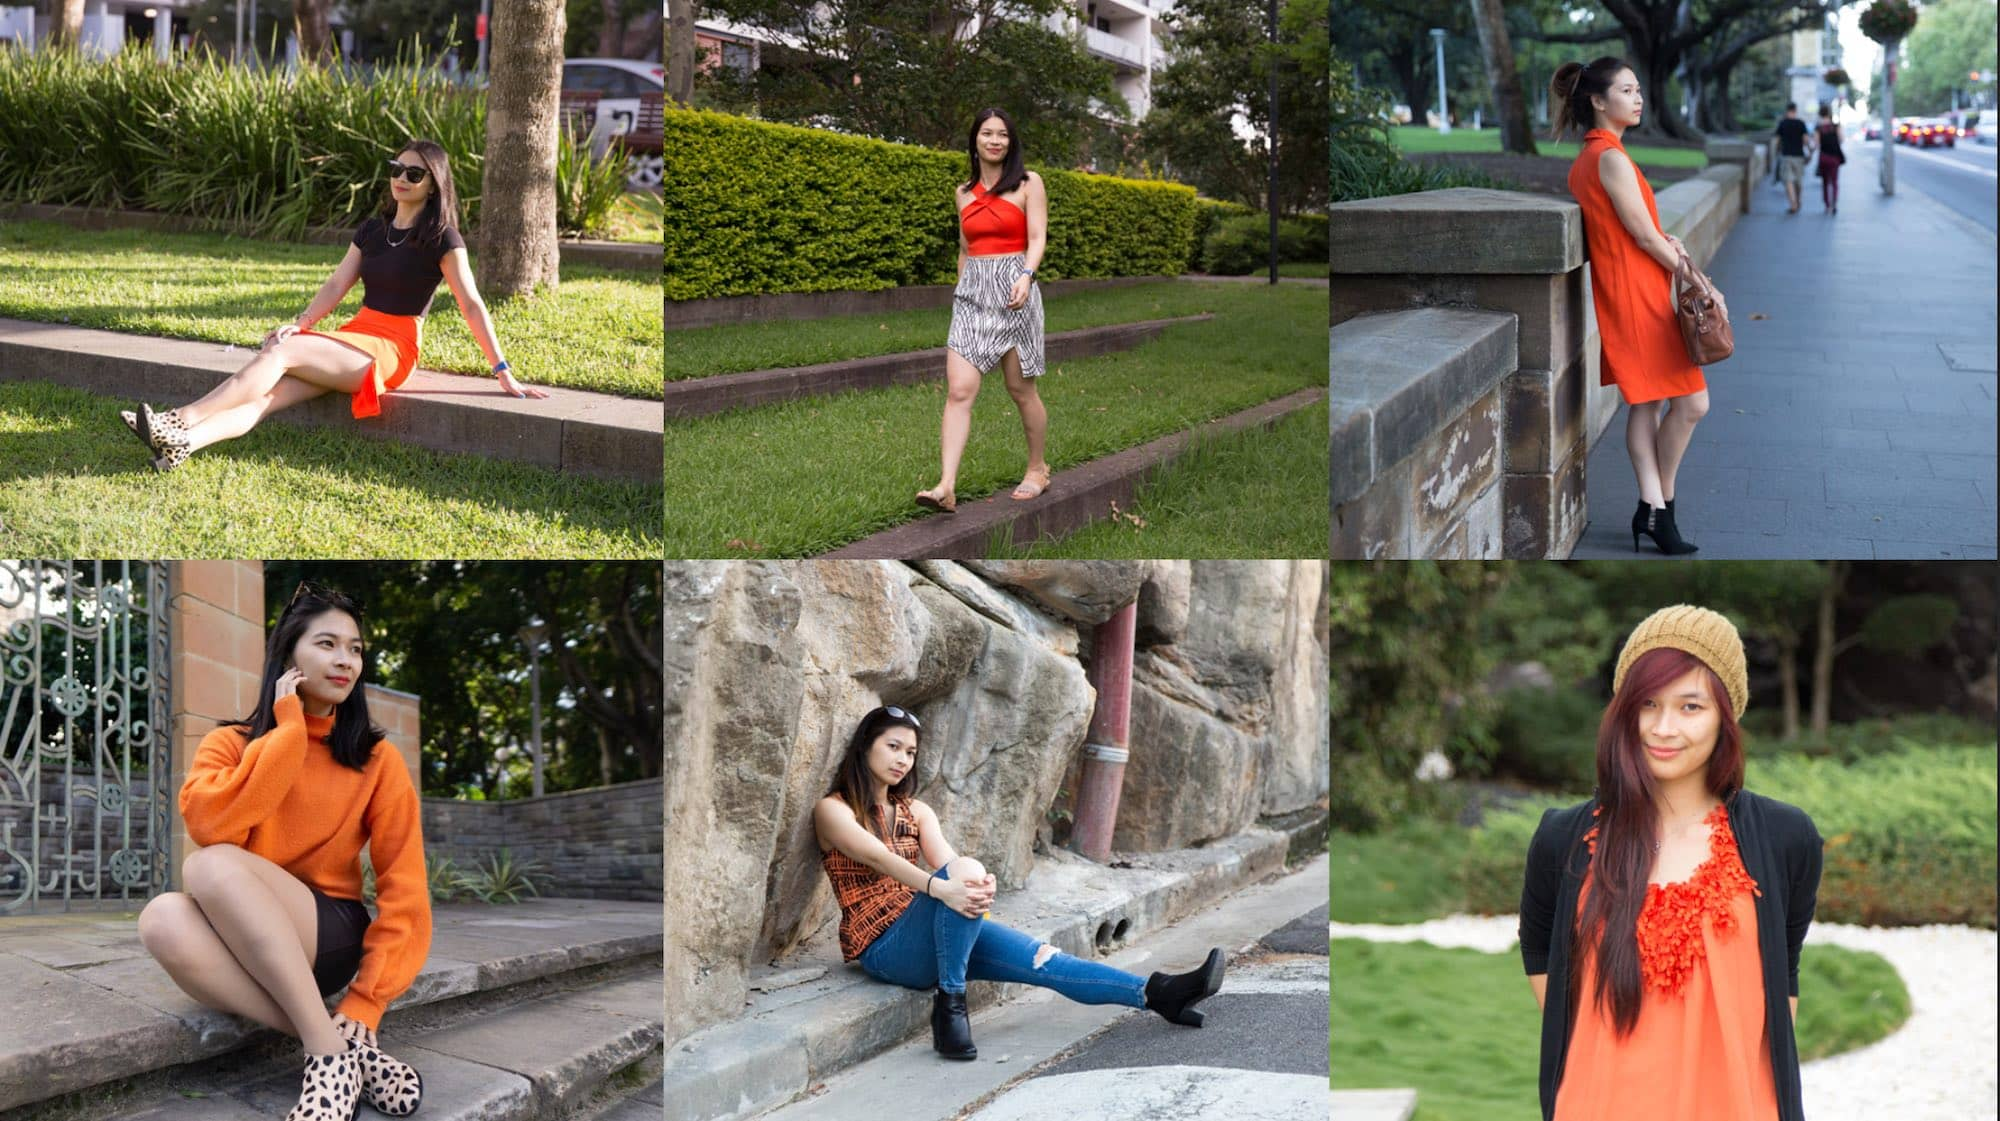 A collage of six photos of the same woman at different periods of time, posing in different outfits with a bright orange element in each of the outfits.